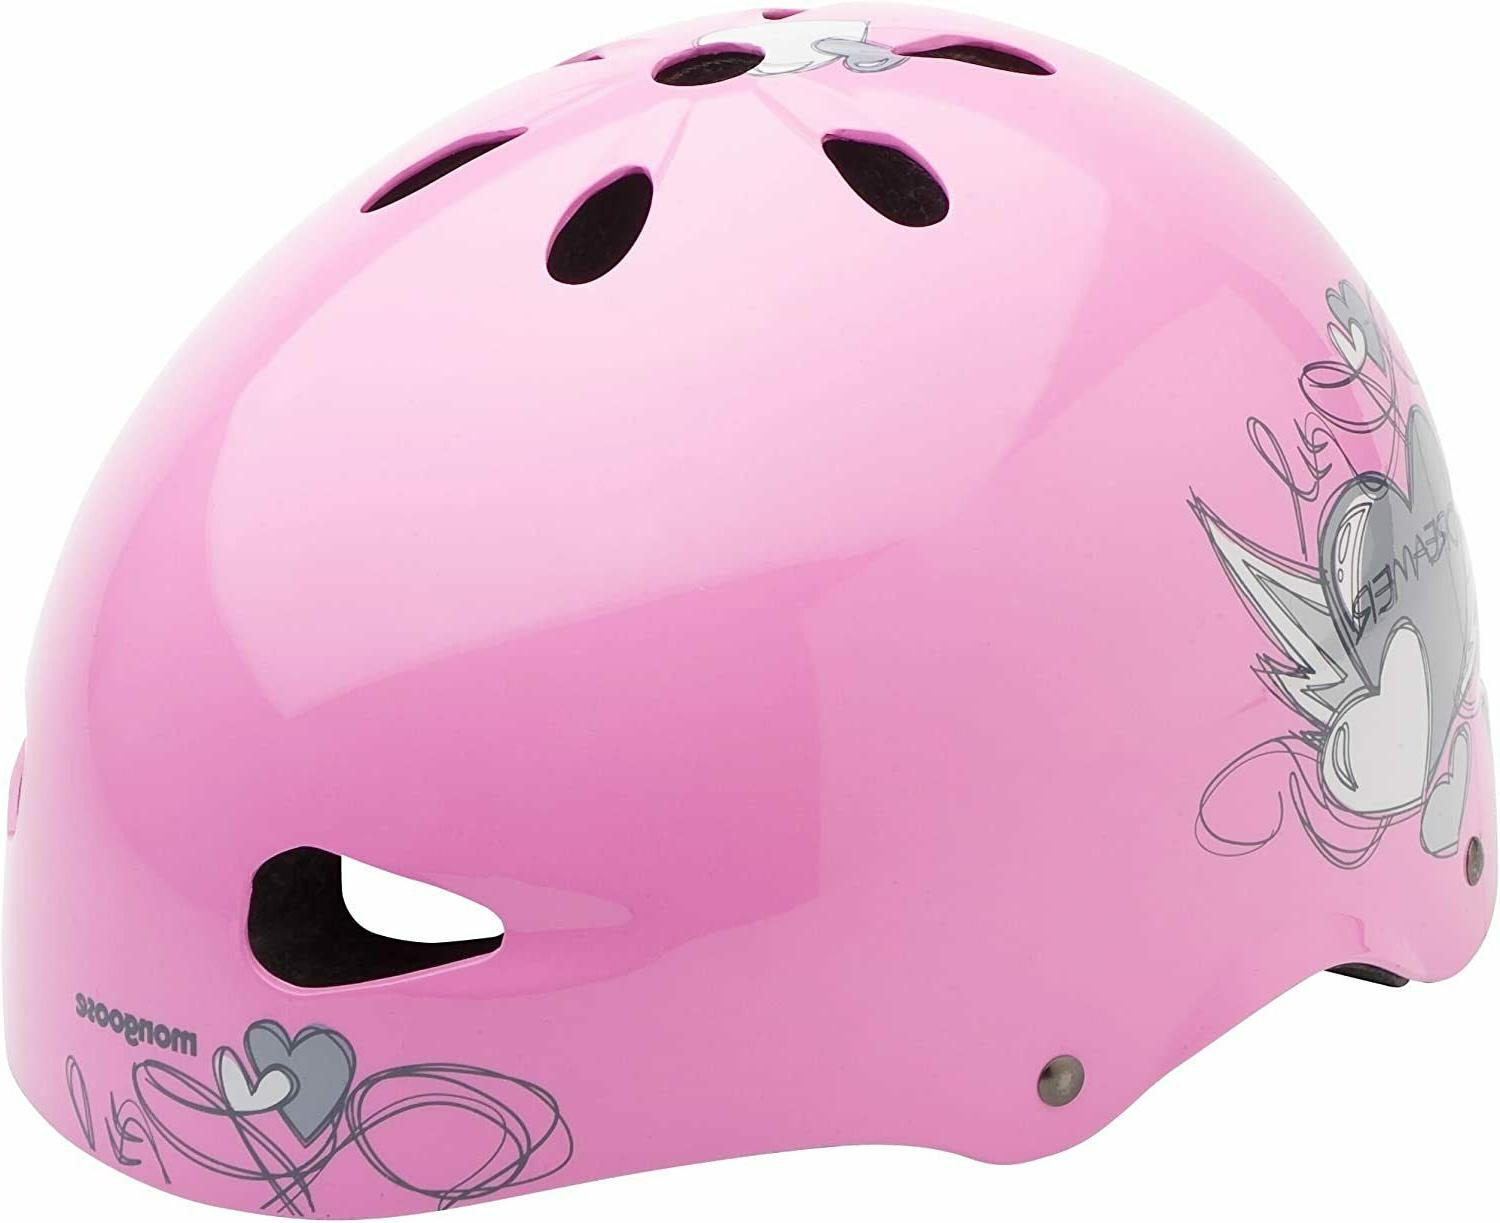 Mongoose Heart Youth Street Helmet